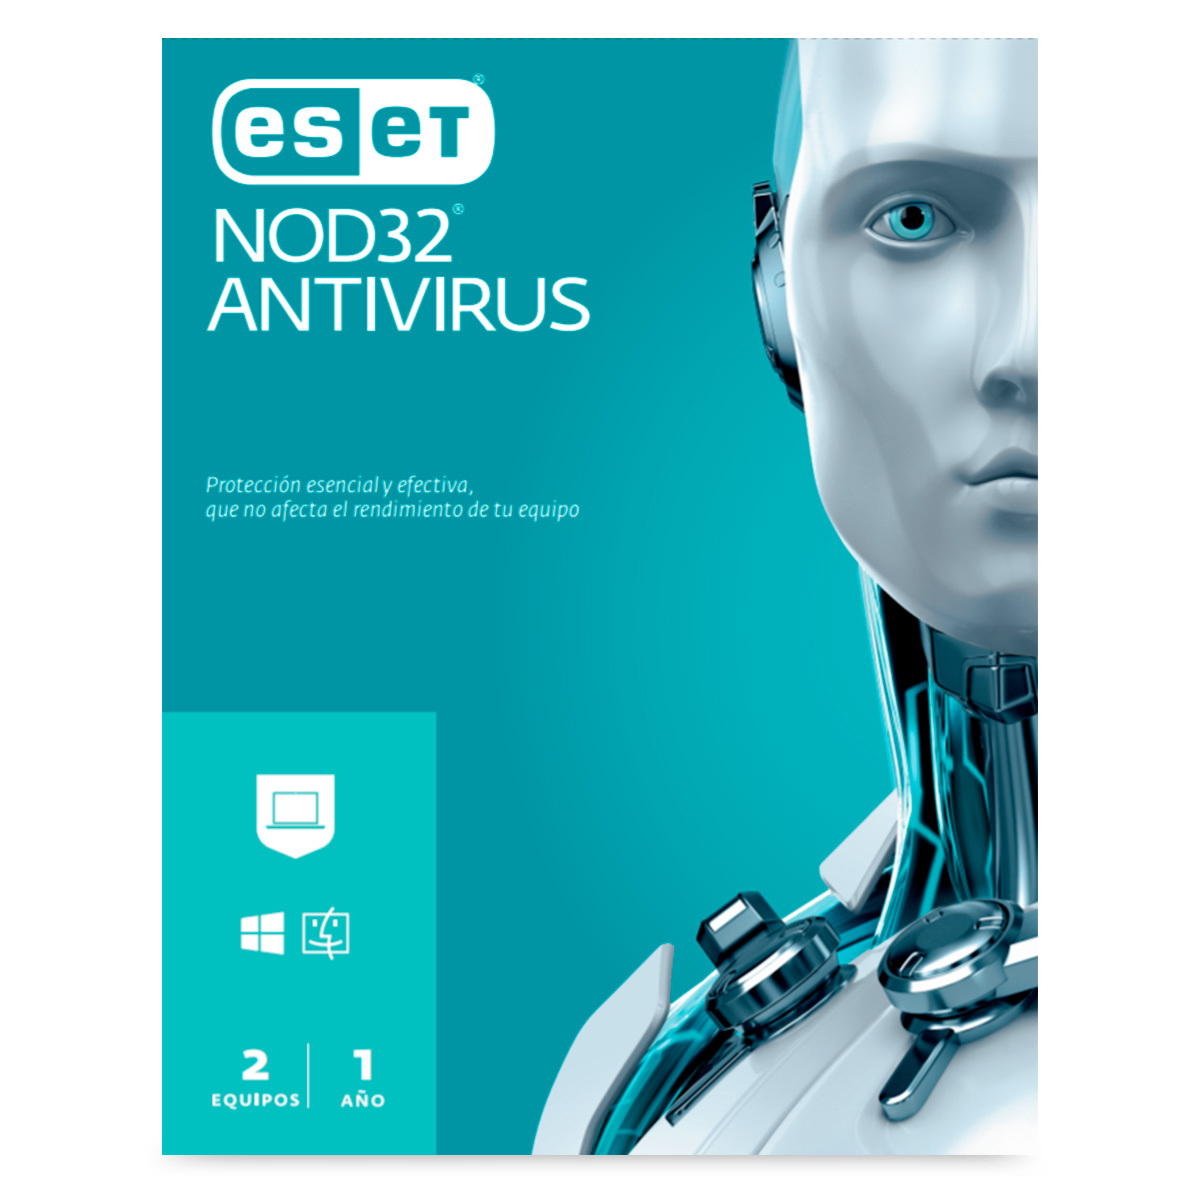 ESET NOD32 ANTIVIRUS 1 AÑO 2PC